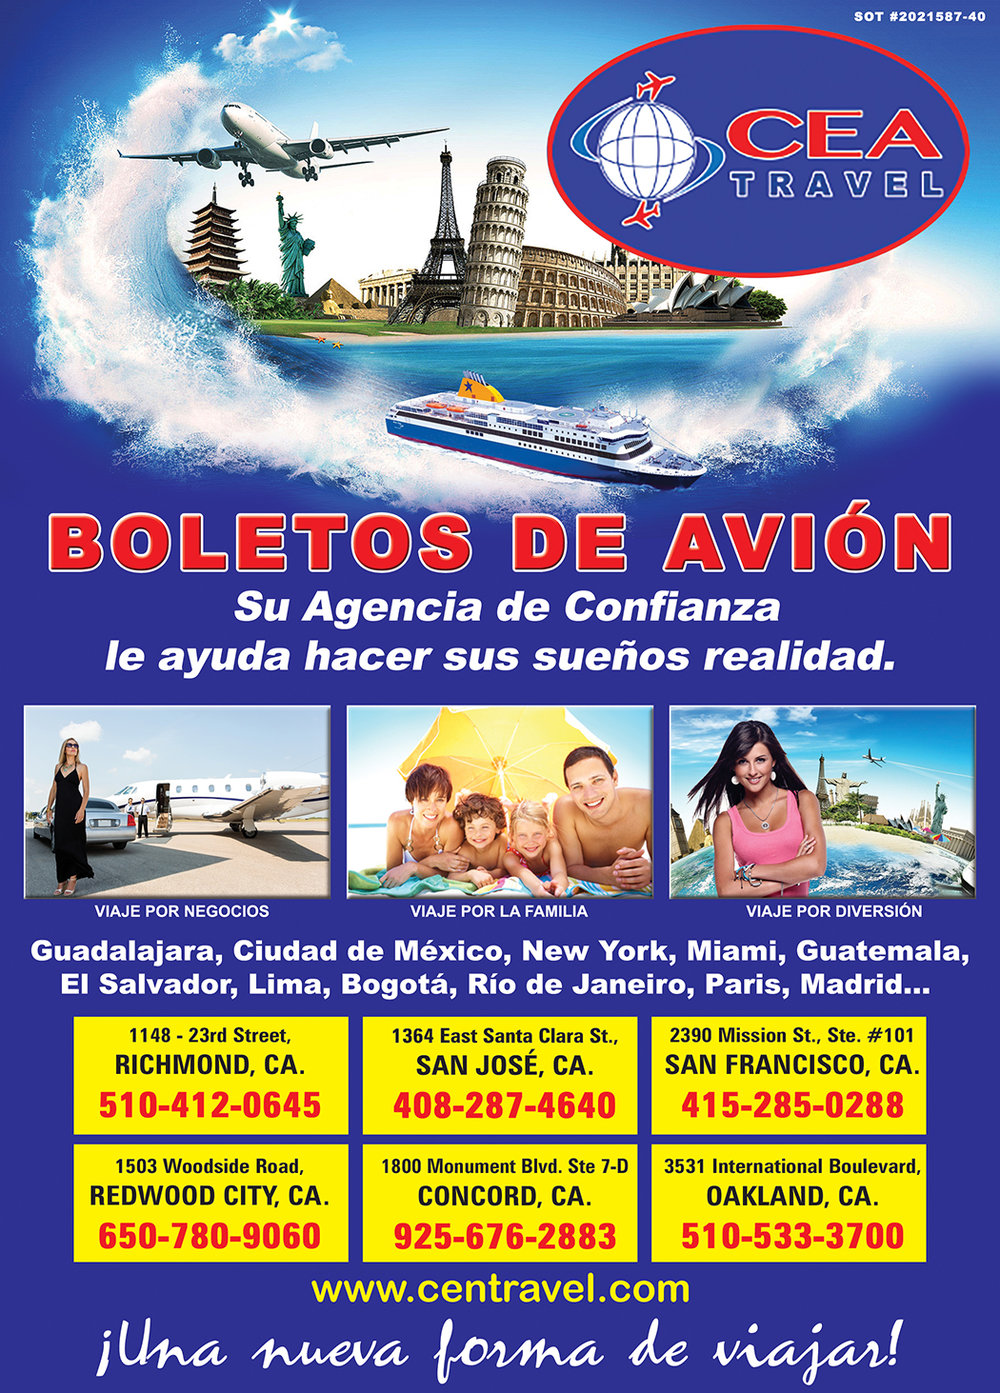 CEA Travel 1 pag JUNIO 2016.jpg